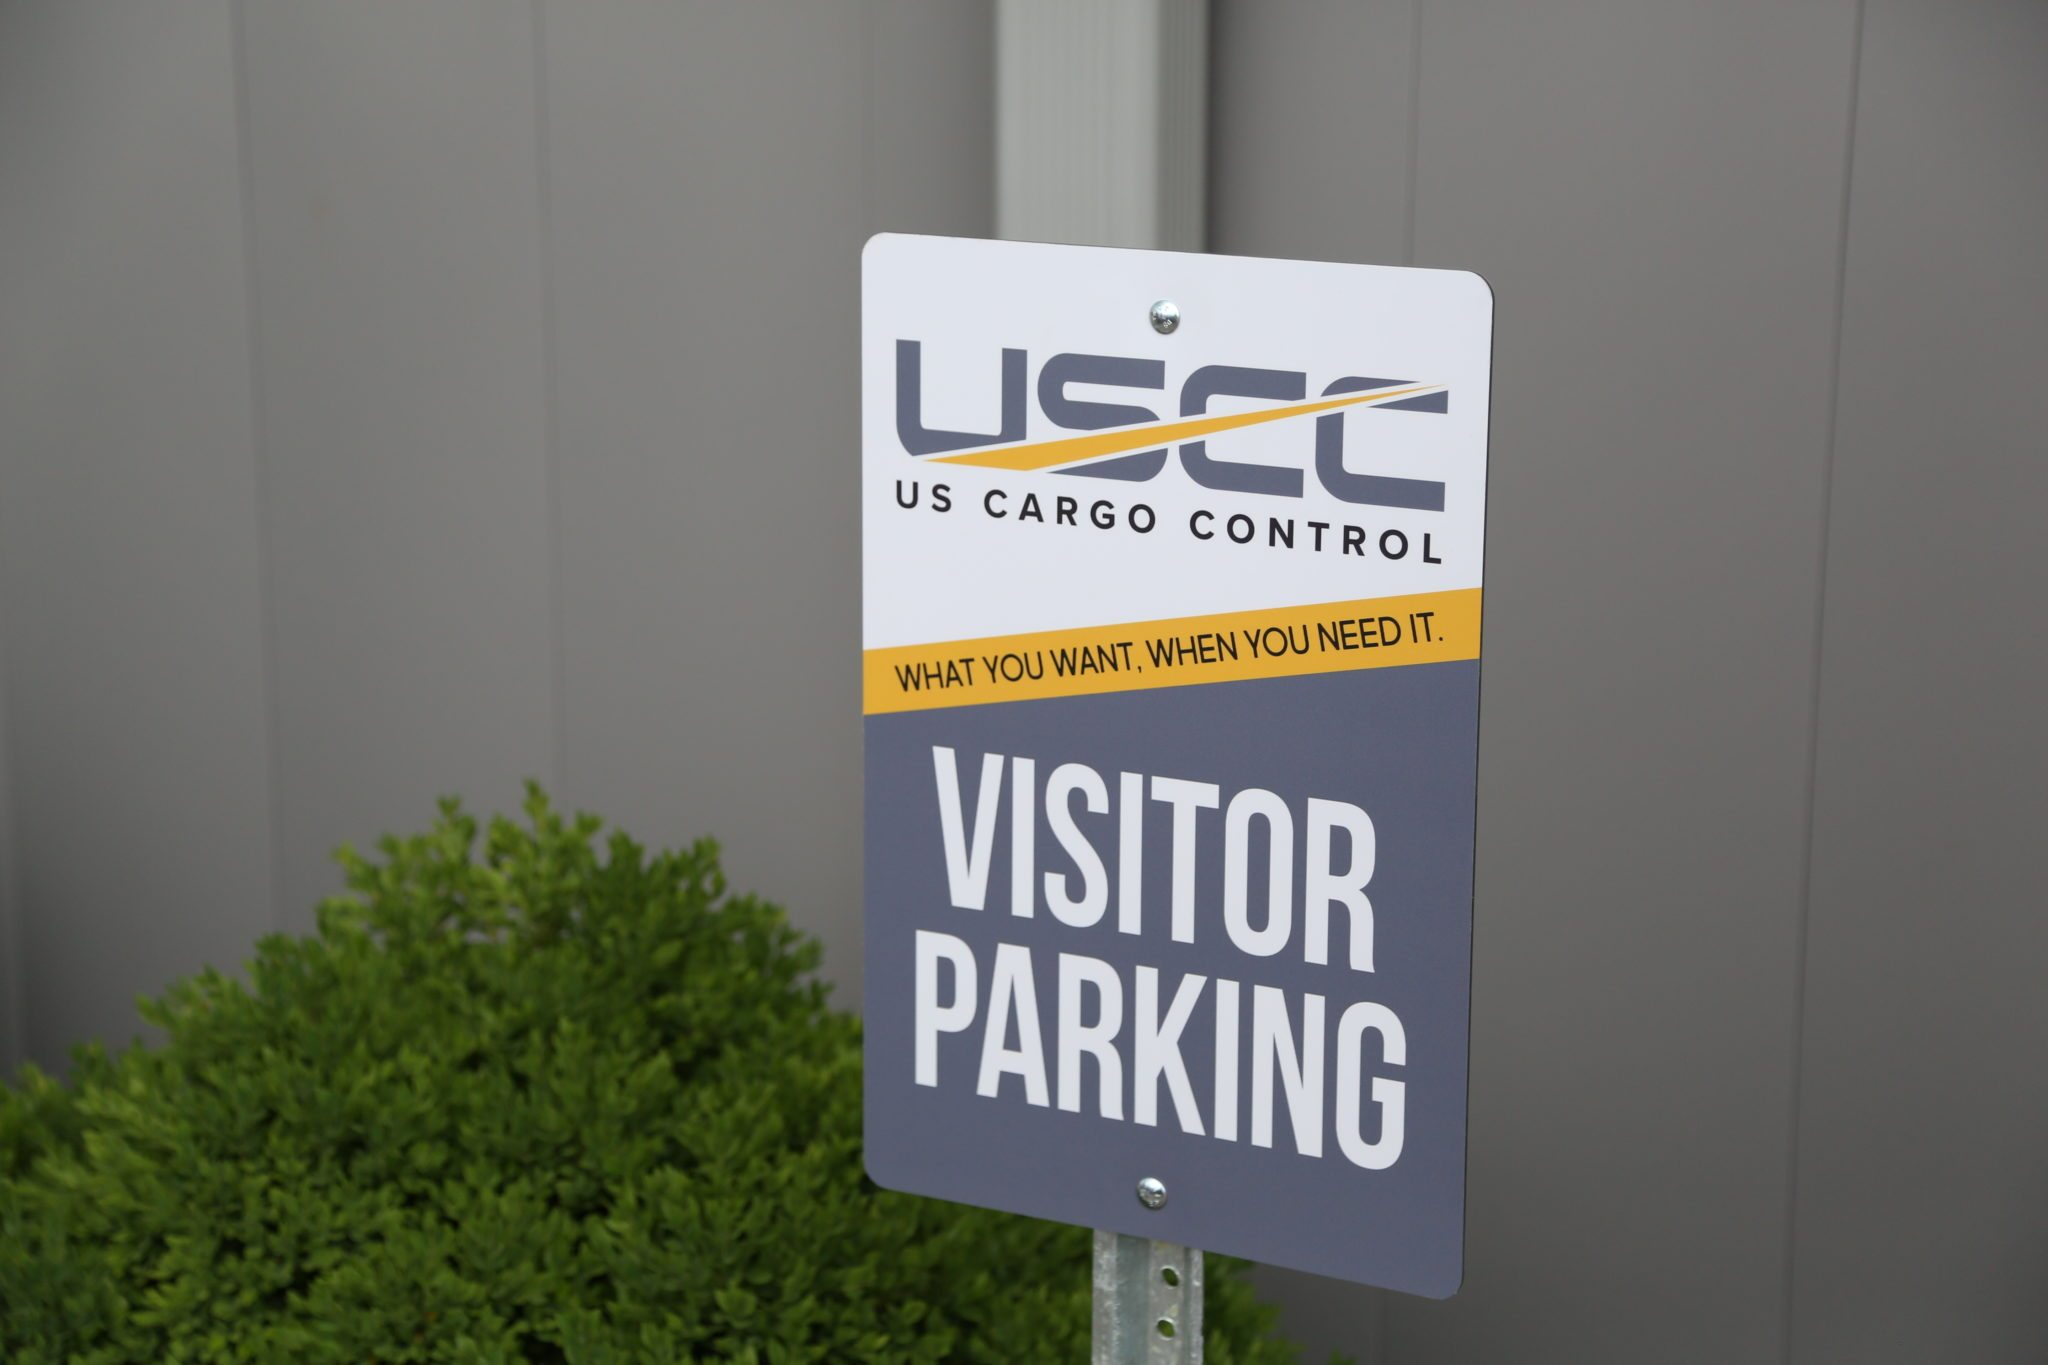 US Cargo Control Visitor Parking